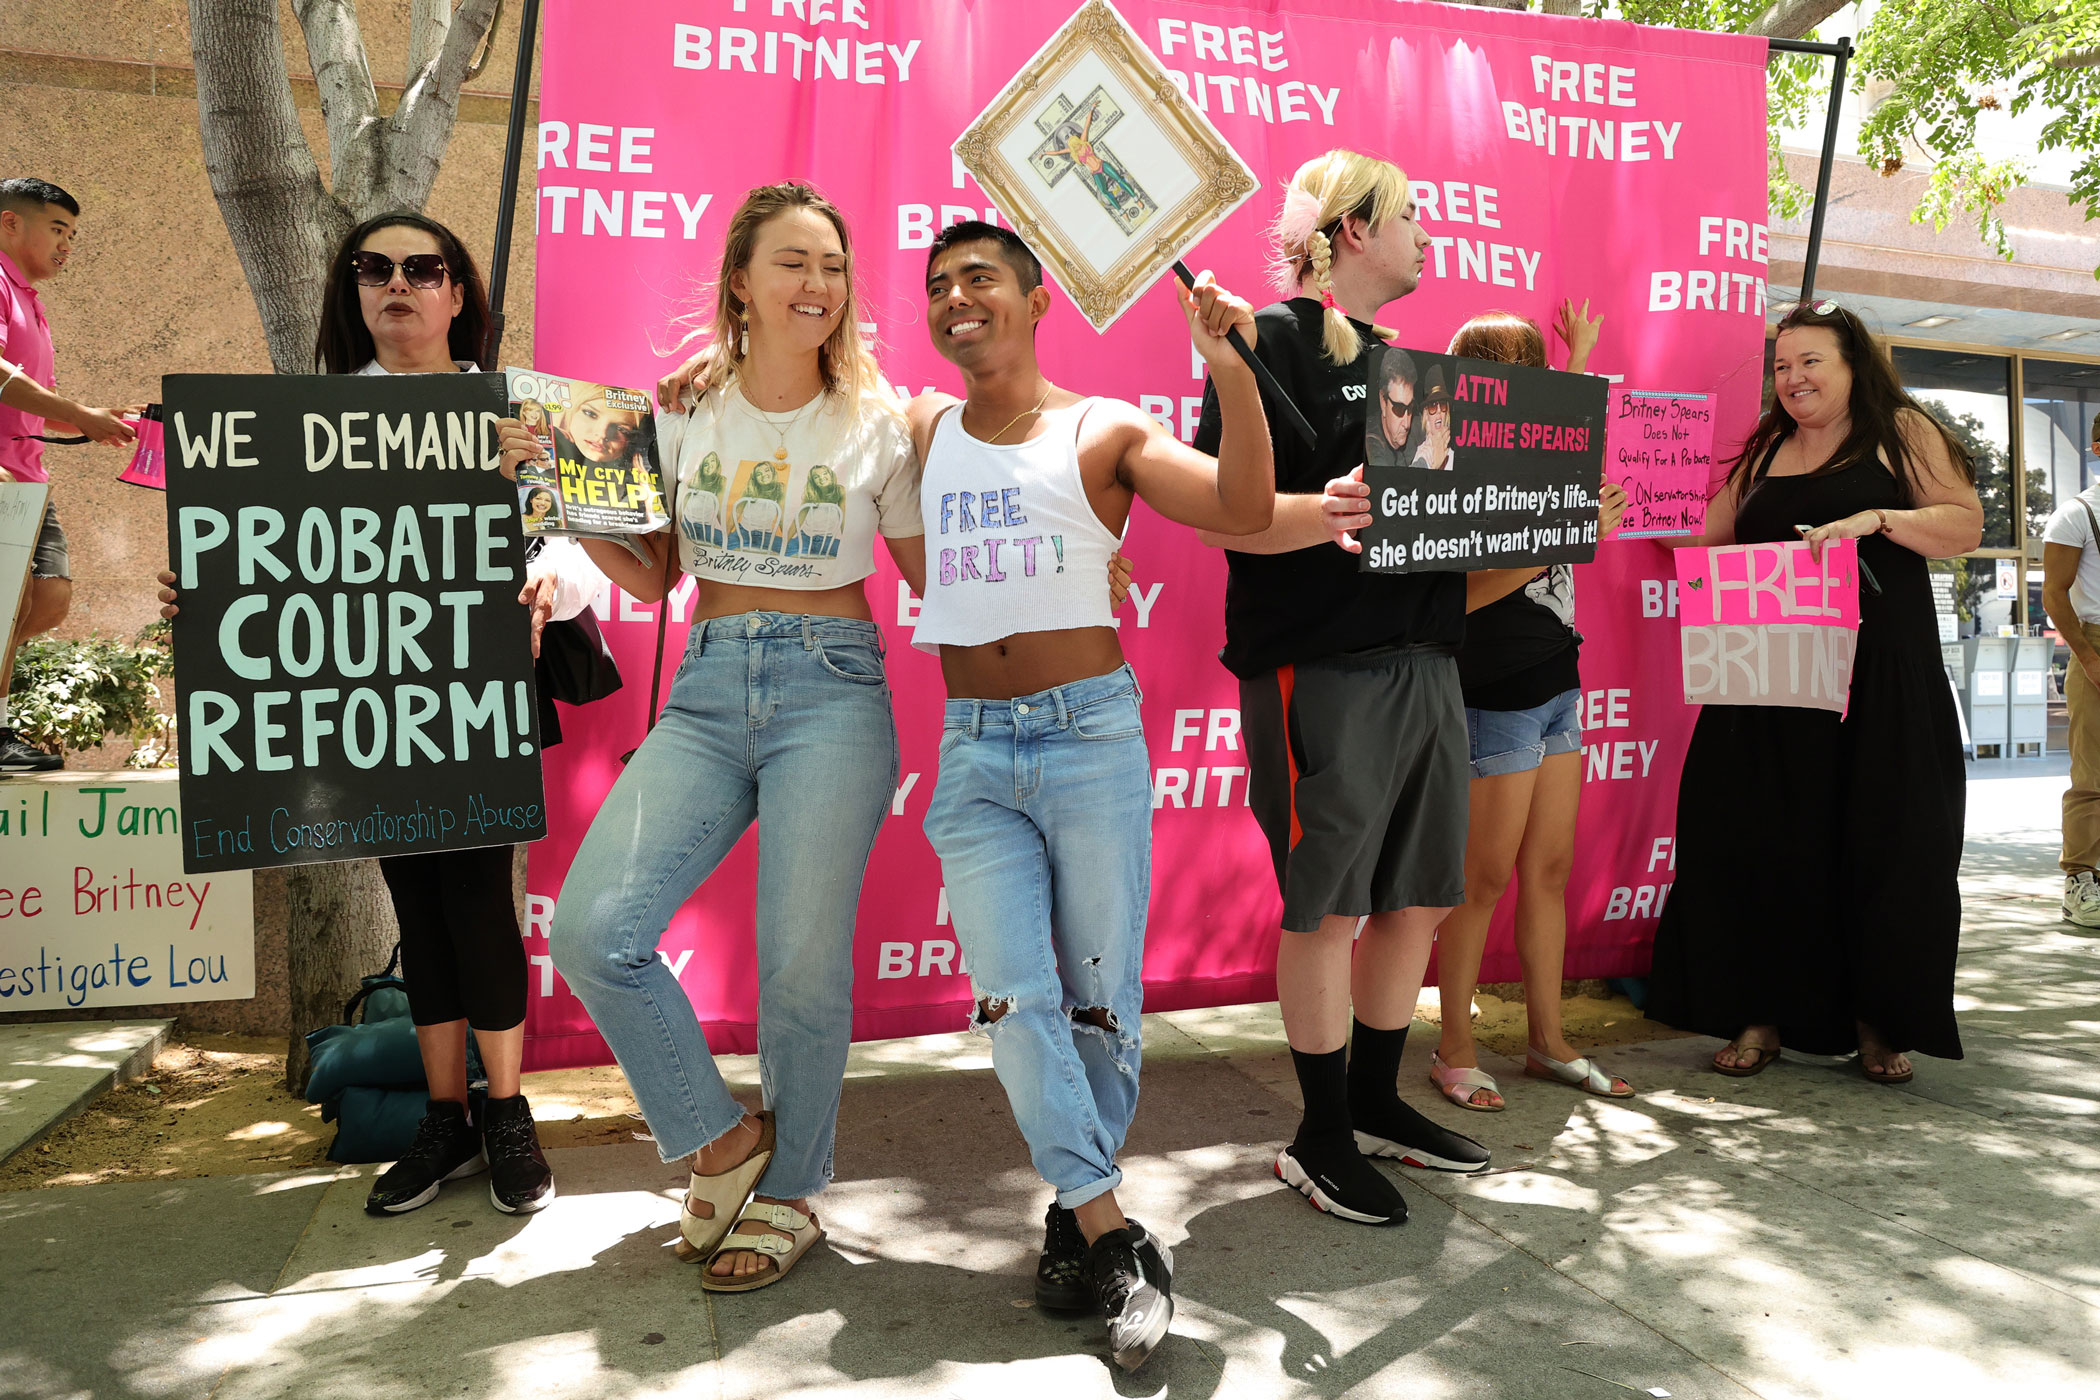 #FreeBritney activists protest at Los Angeles Grand Park.